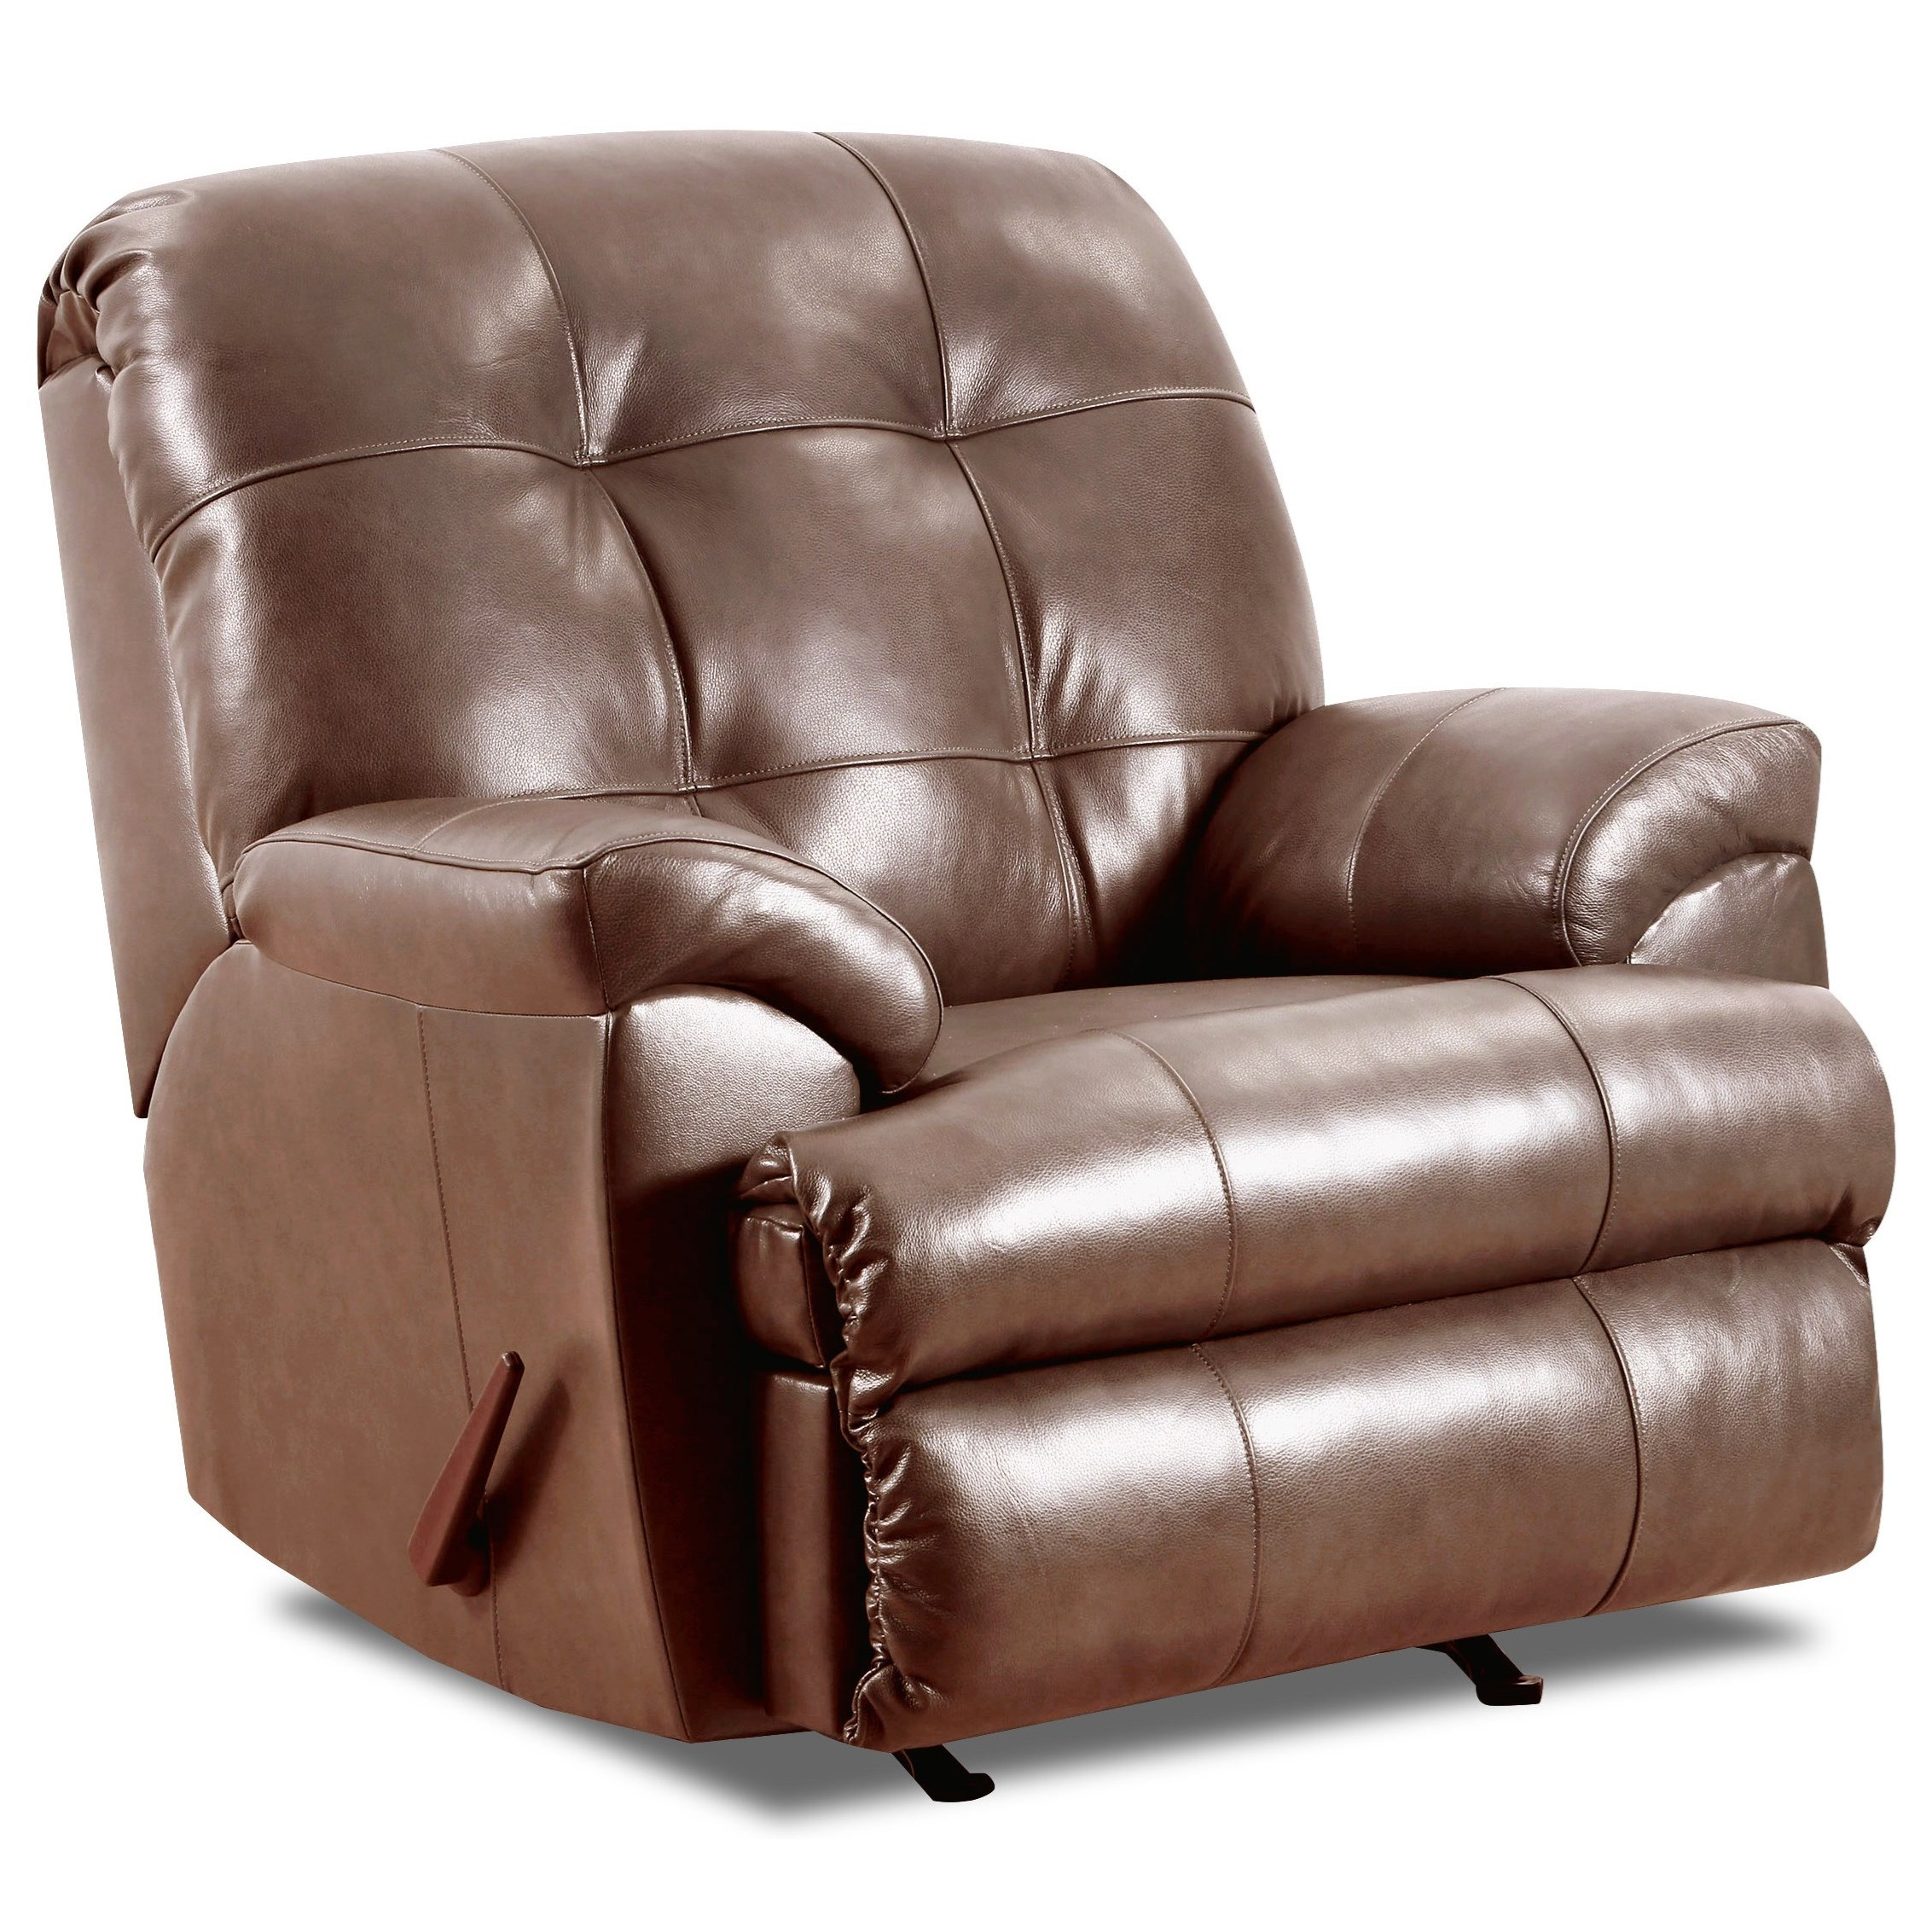 4101 Rocker Recliner by Lane at Story & Lee Furniture